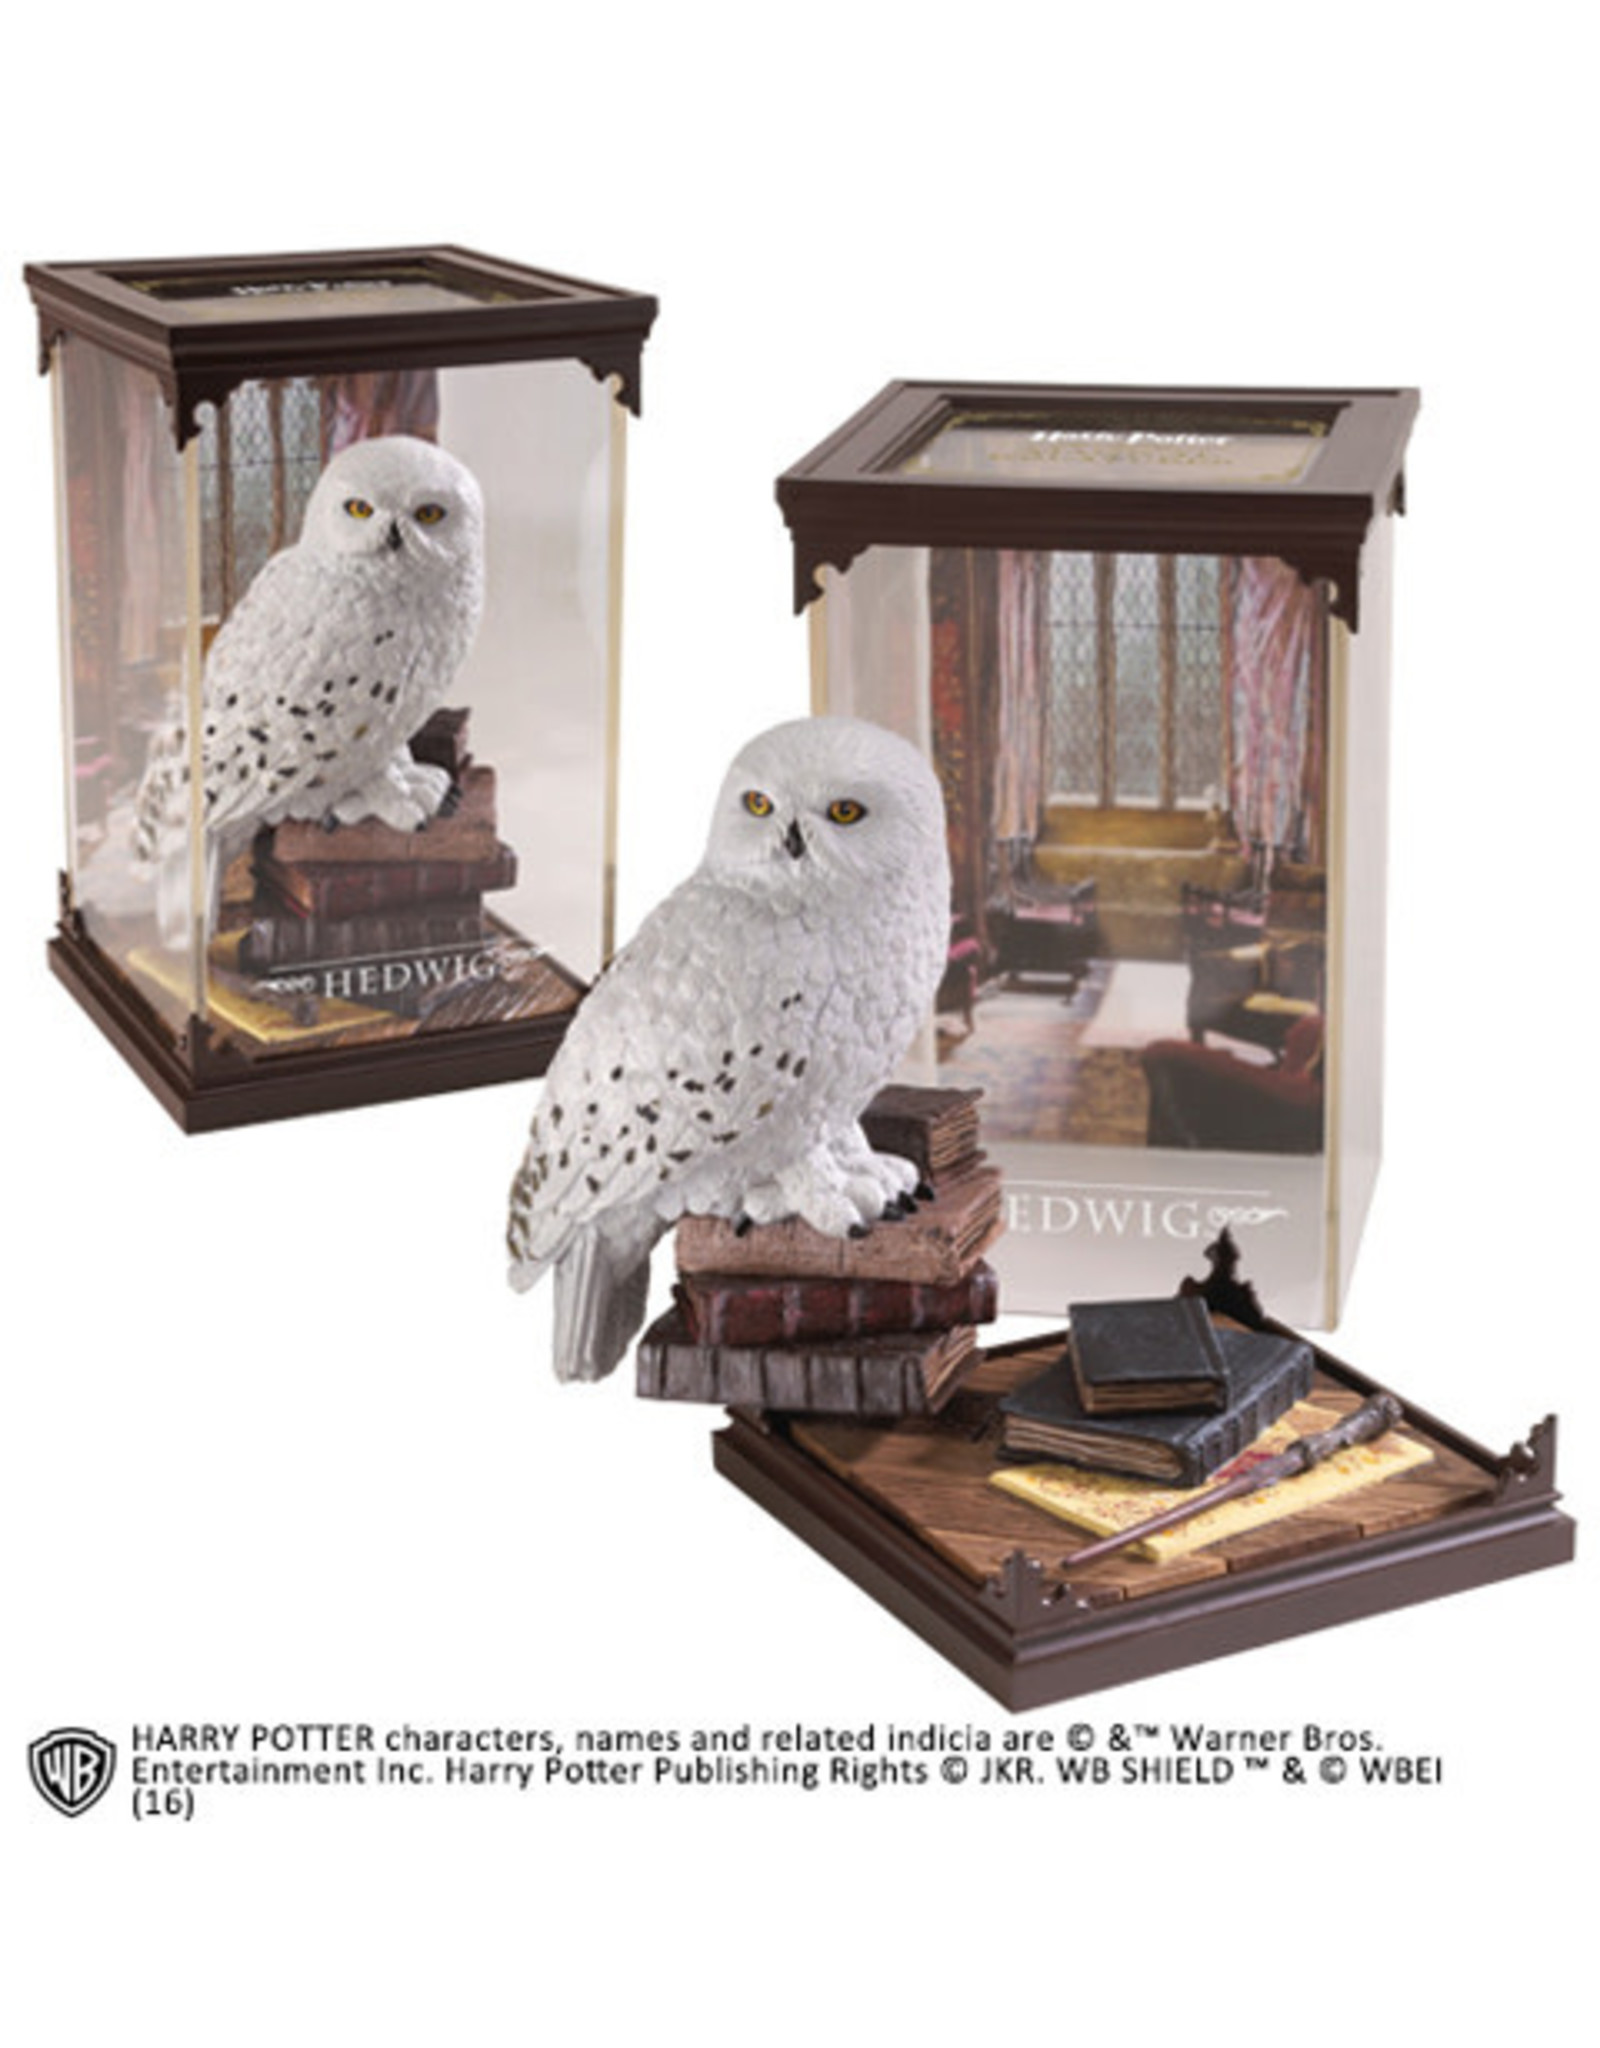 Noble Collection HARRY POTTER Magical Creatures Statue 01 - Hedwig